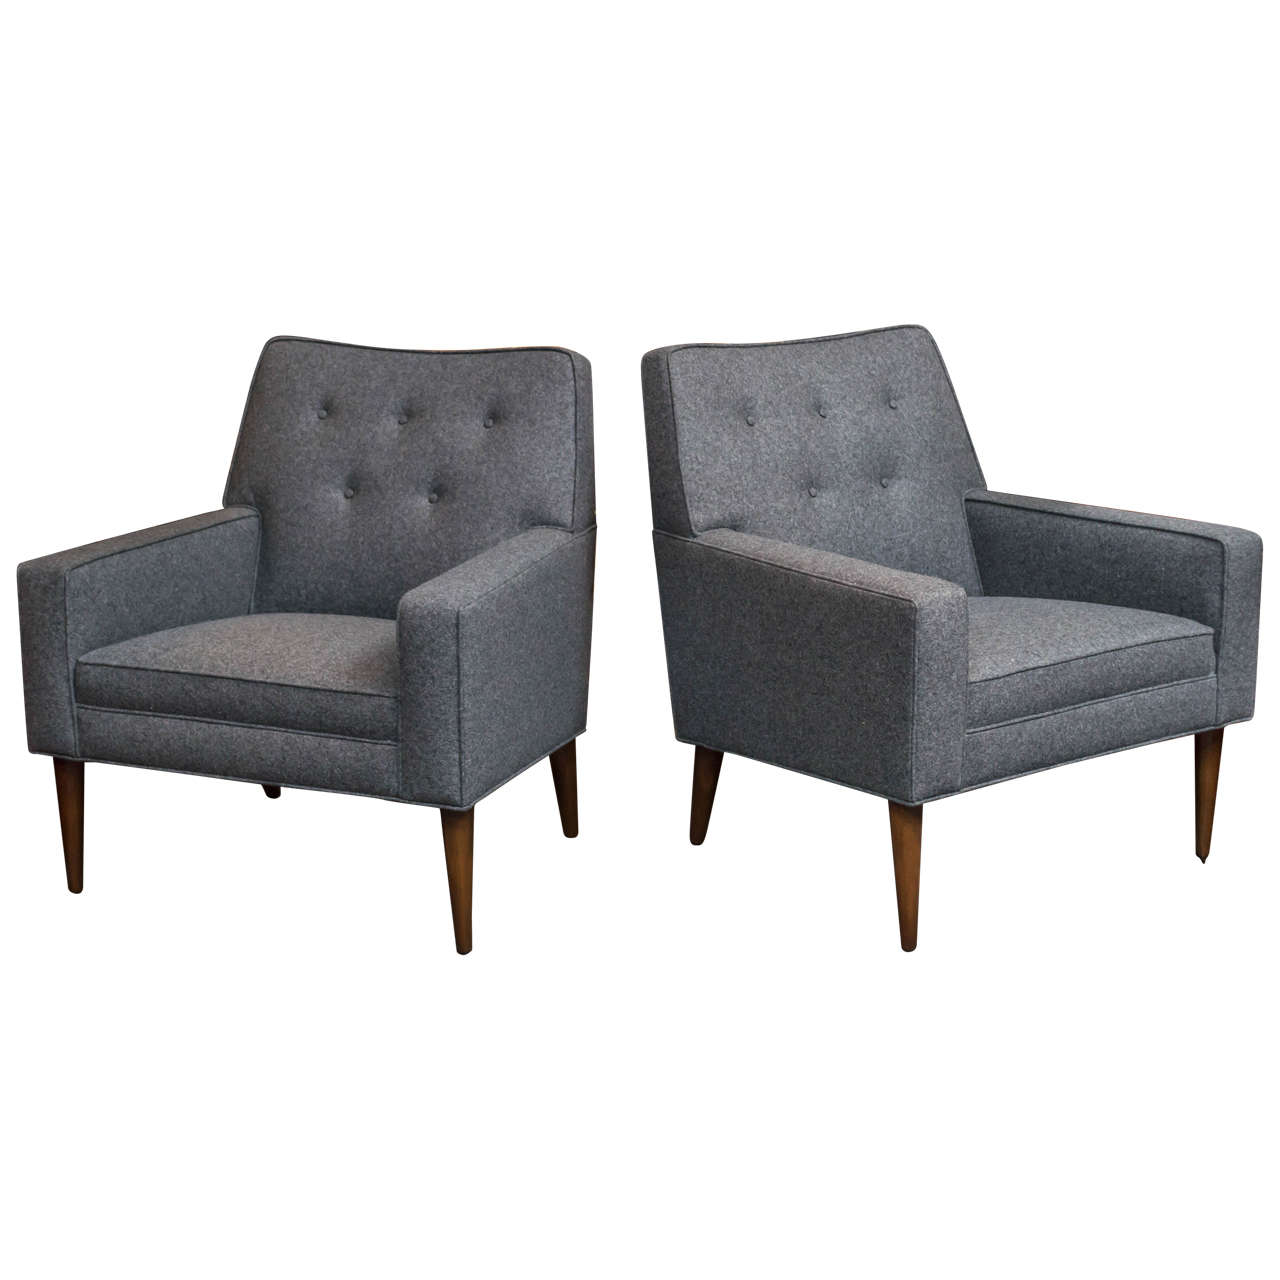 Modern Club Chairs Mid Century Modern Lounge Chairs At 1stdibs